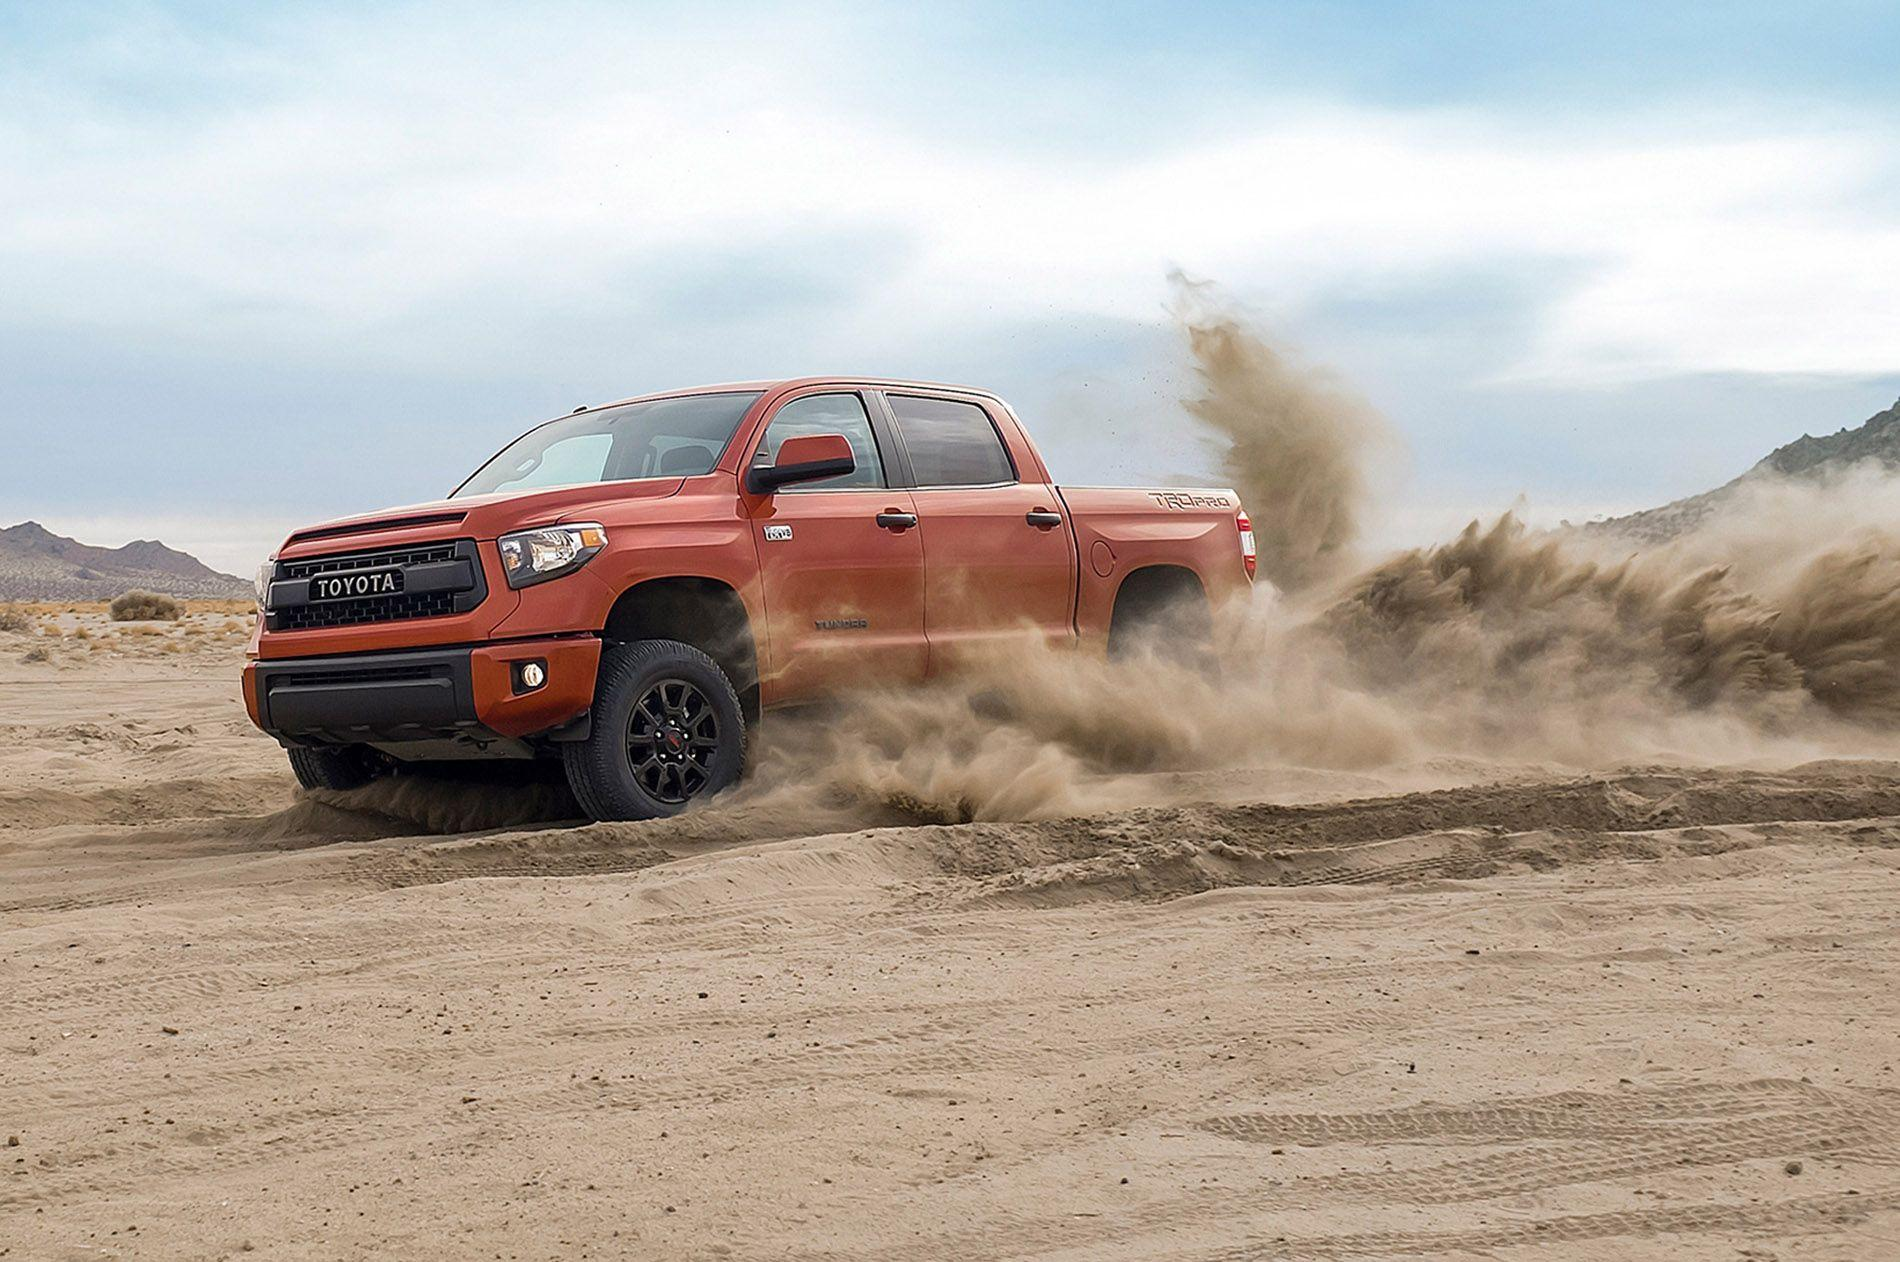 Toyota Tundra Trd Pro Diesel Cars Wallpapers With High Resolution For